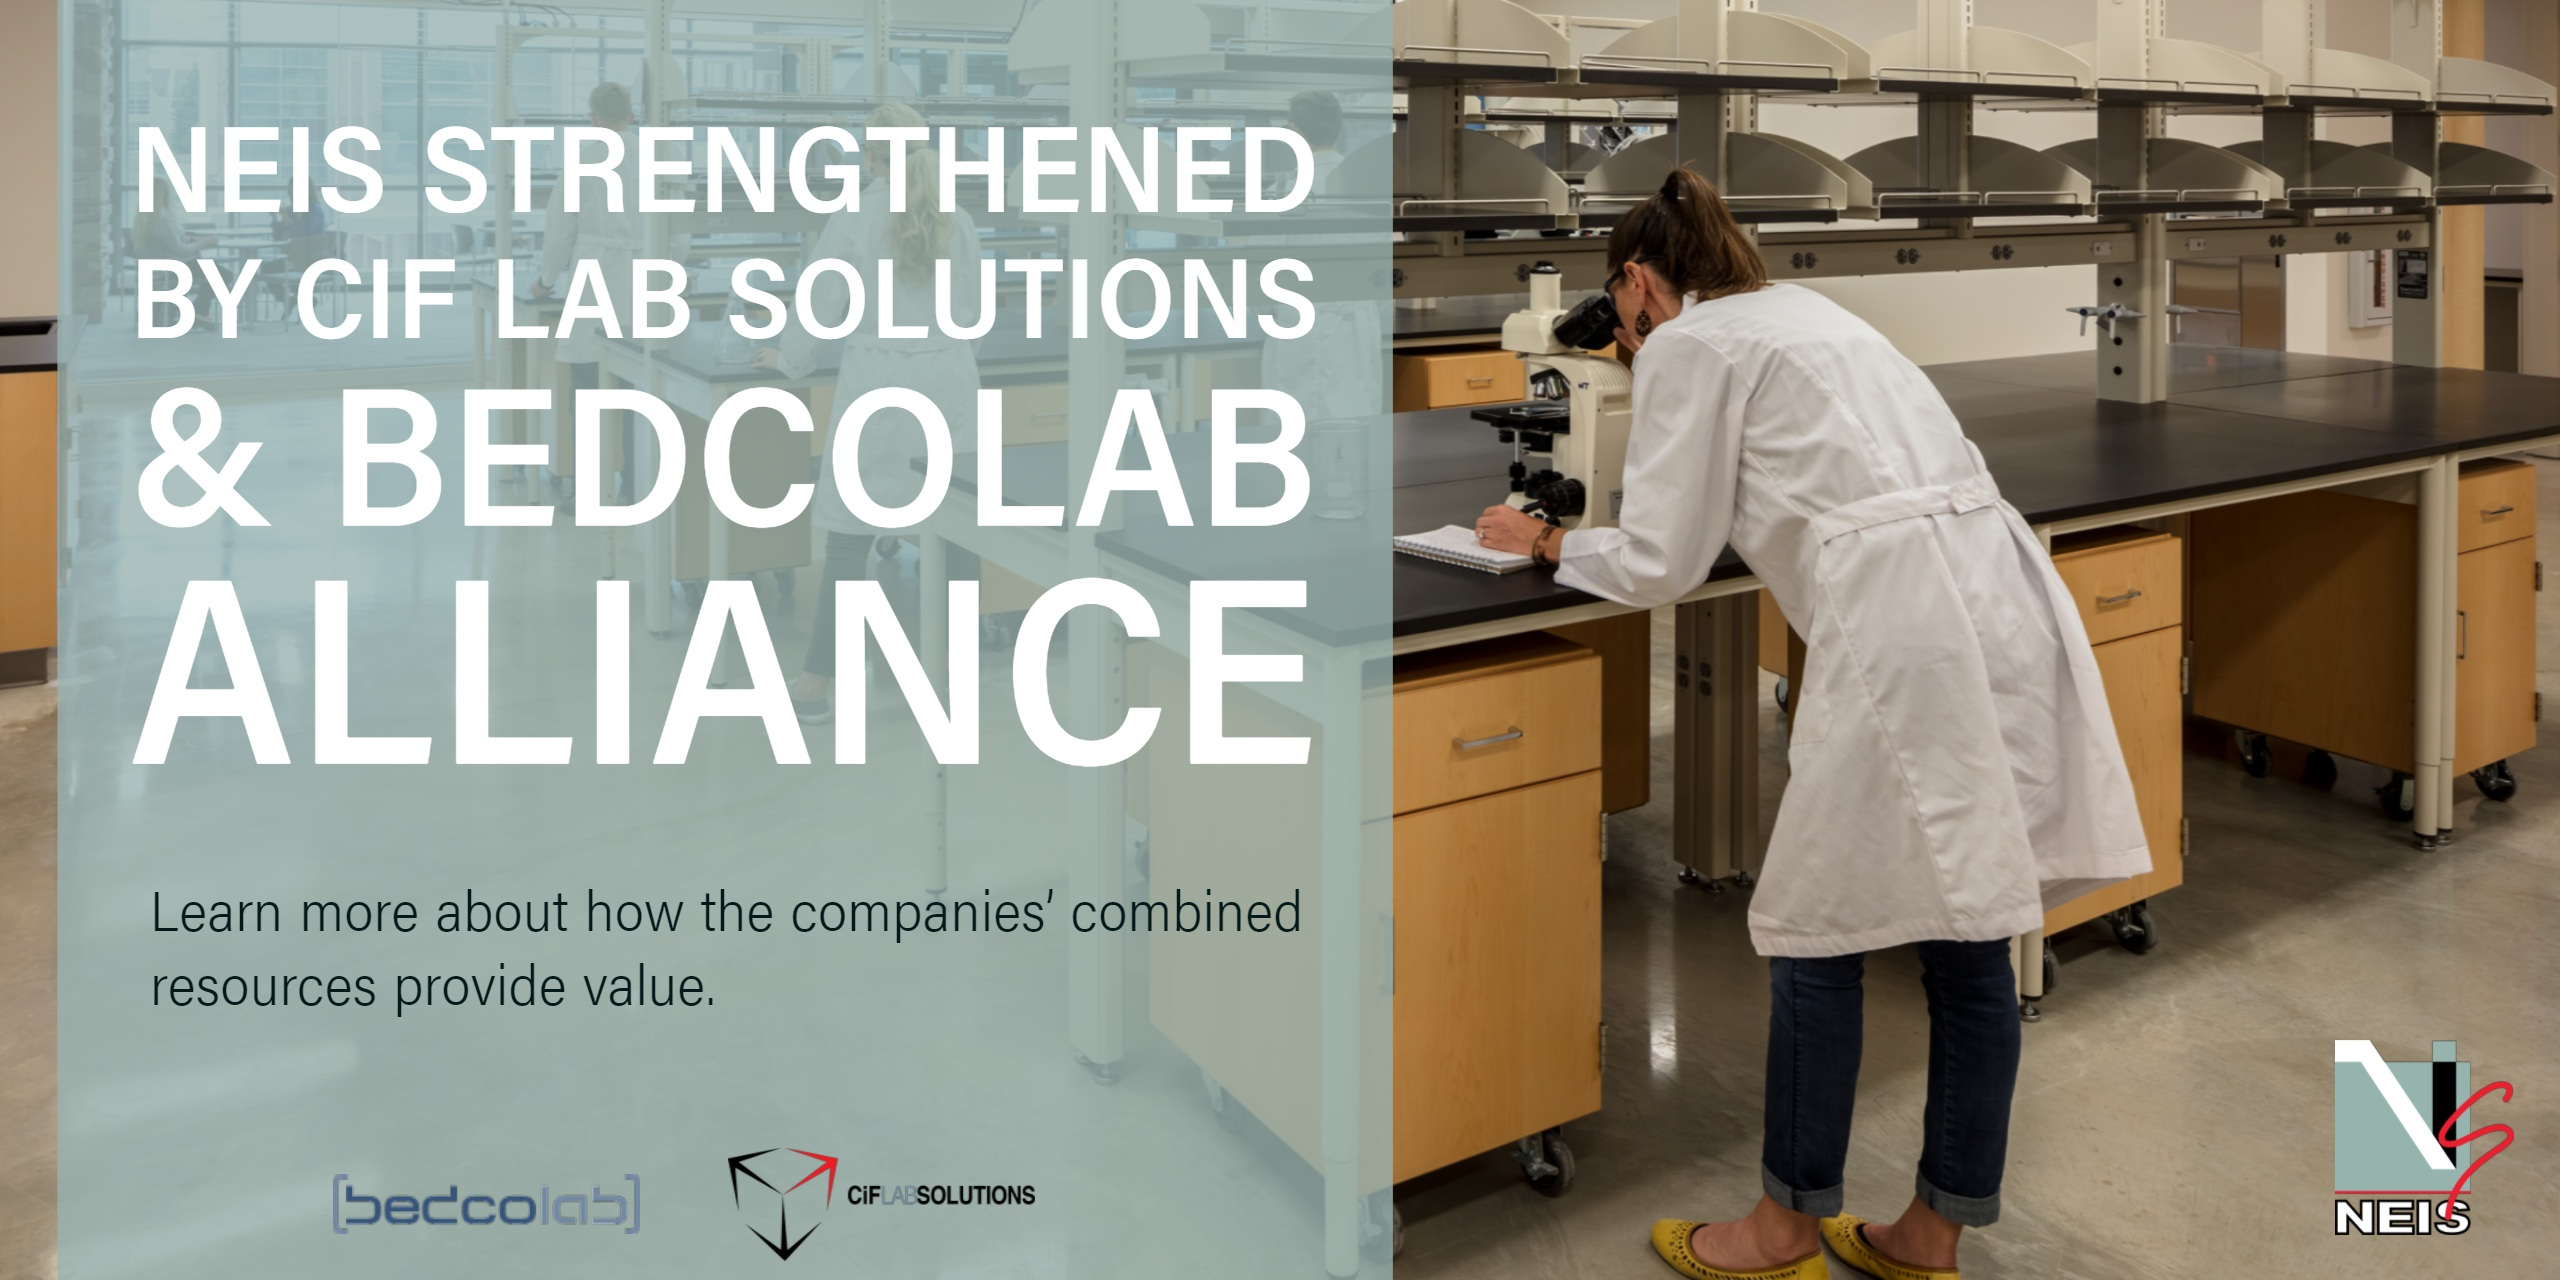 NEIS Strengthened by Bedcolab and CiF Lab Solutions Alliance